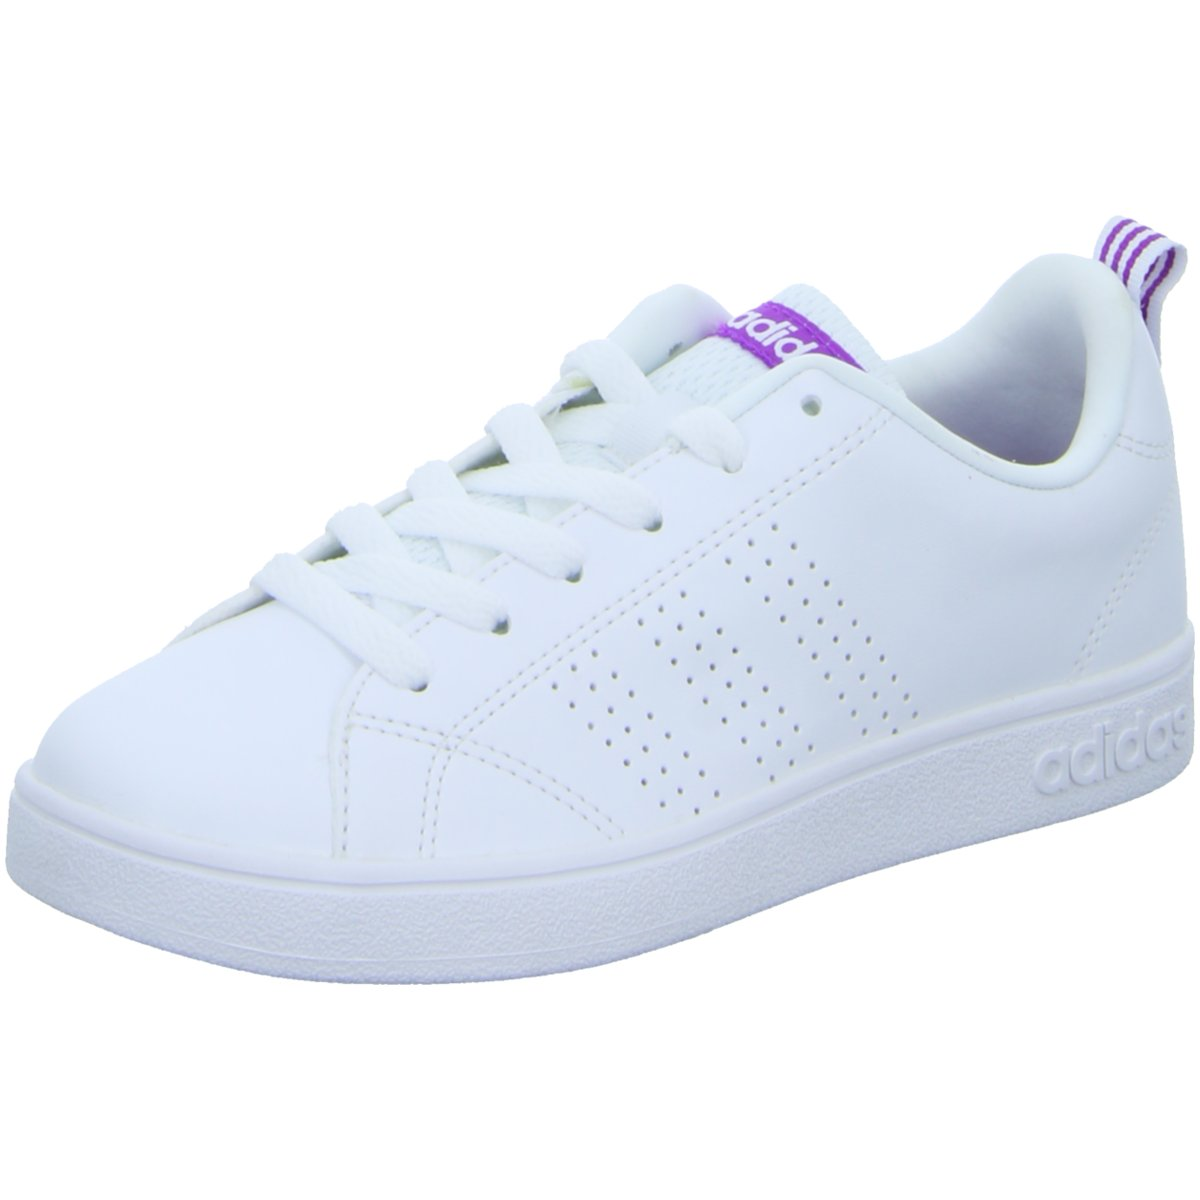 Details zu adidas Damen Sneaker Training VS ADVANTAGE CL W BB9616 weiß  308878